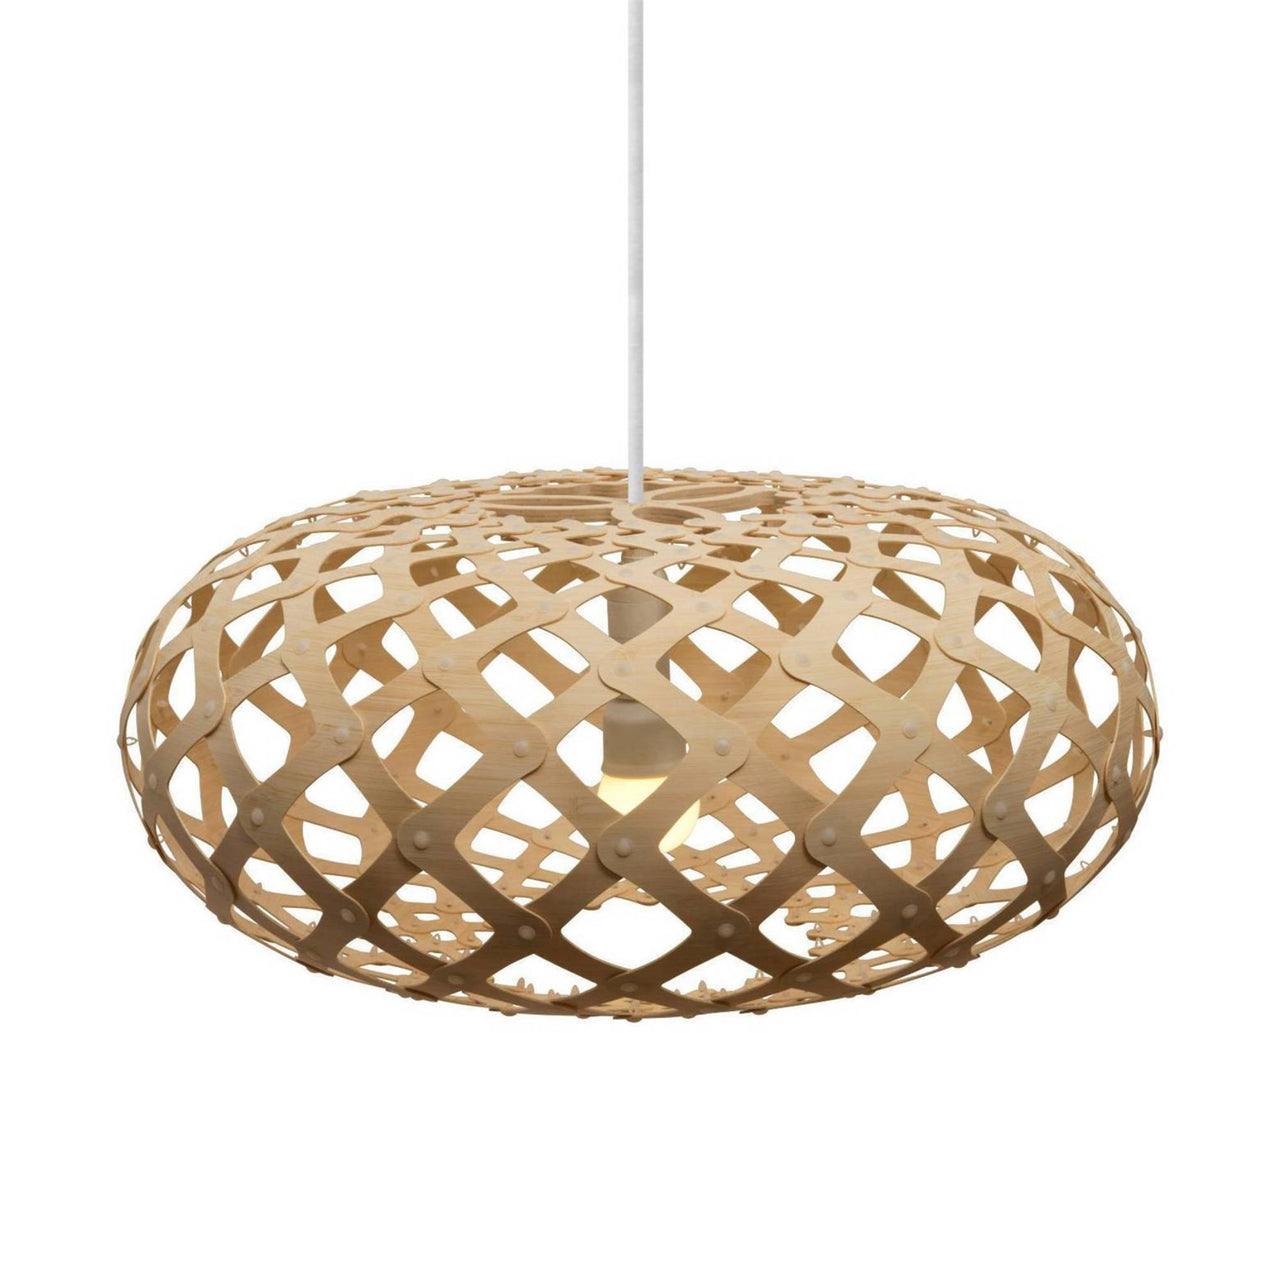 Kina Pendant Light: 800 + Natural